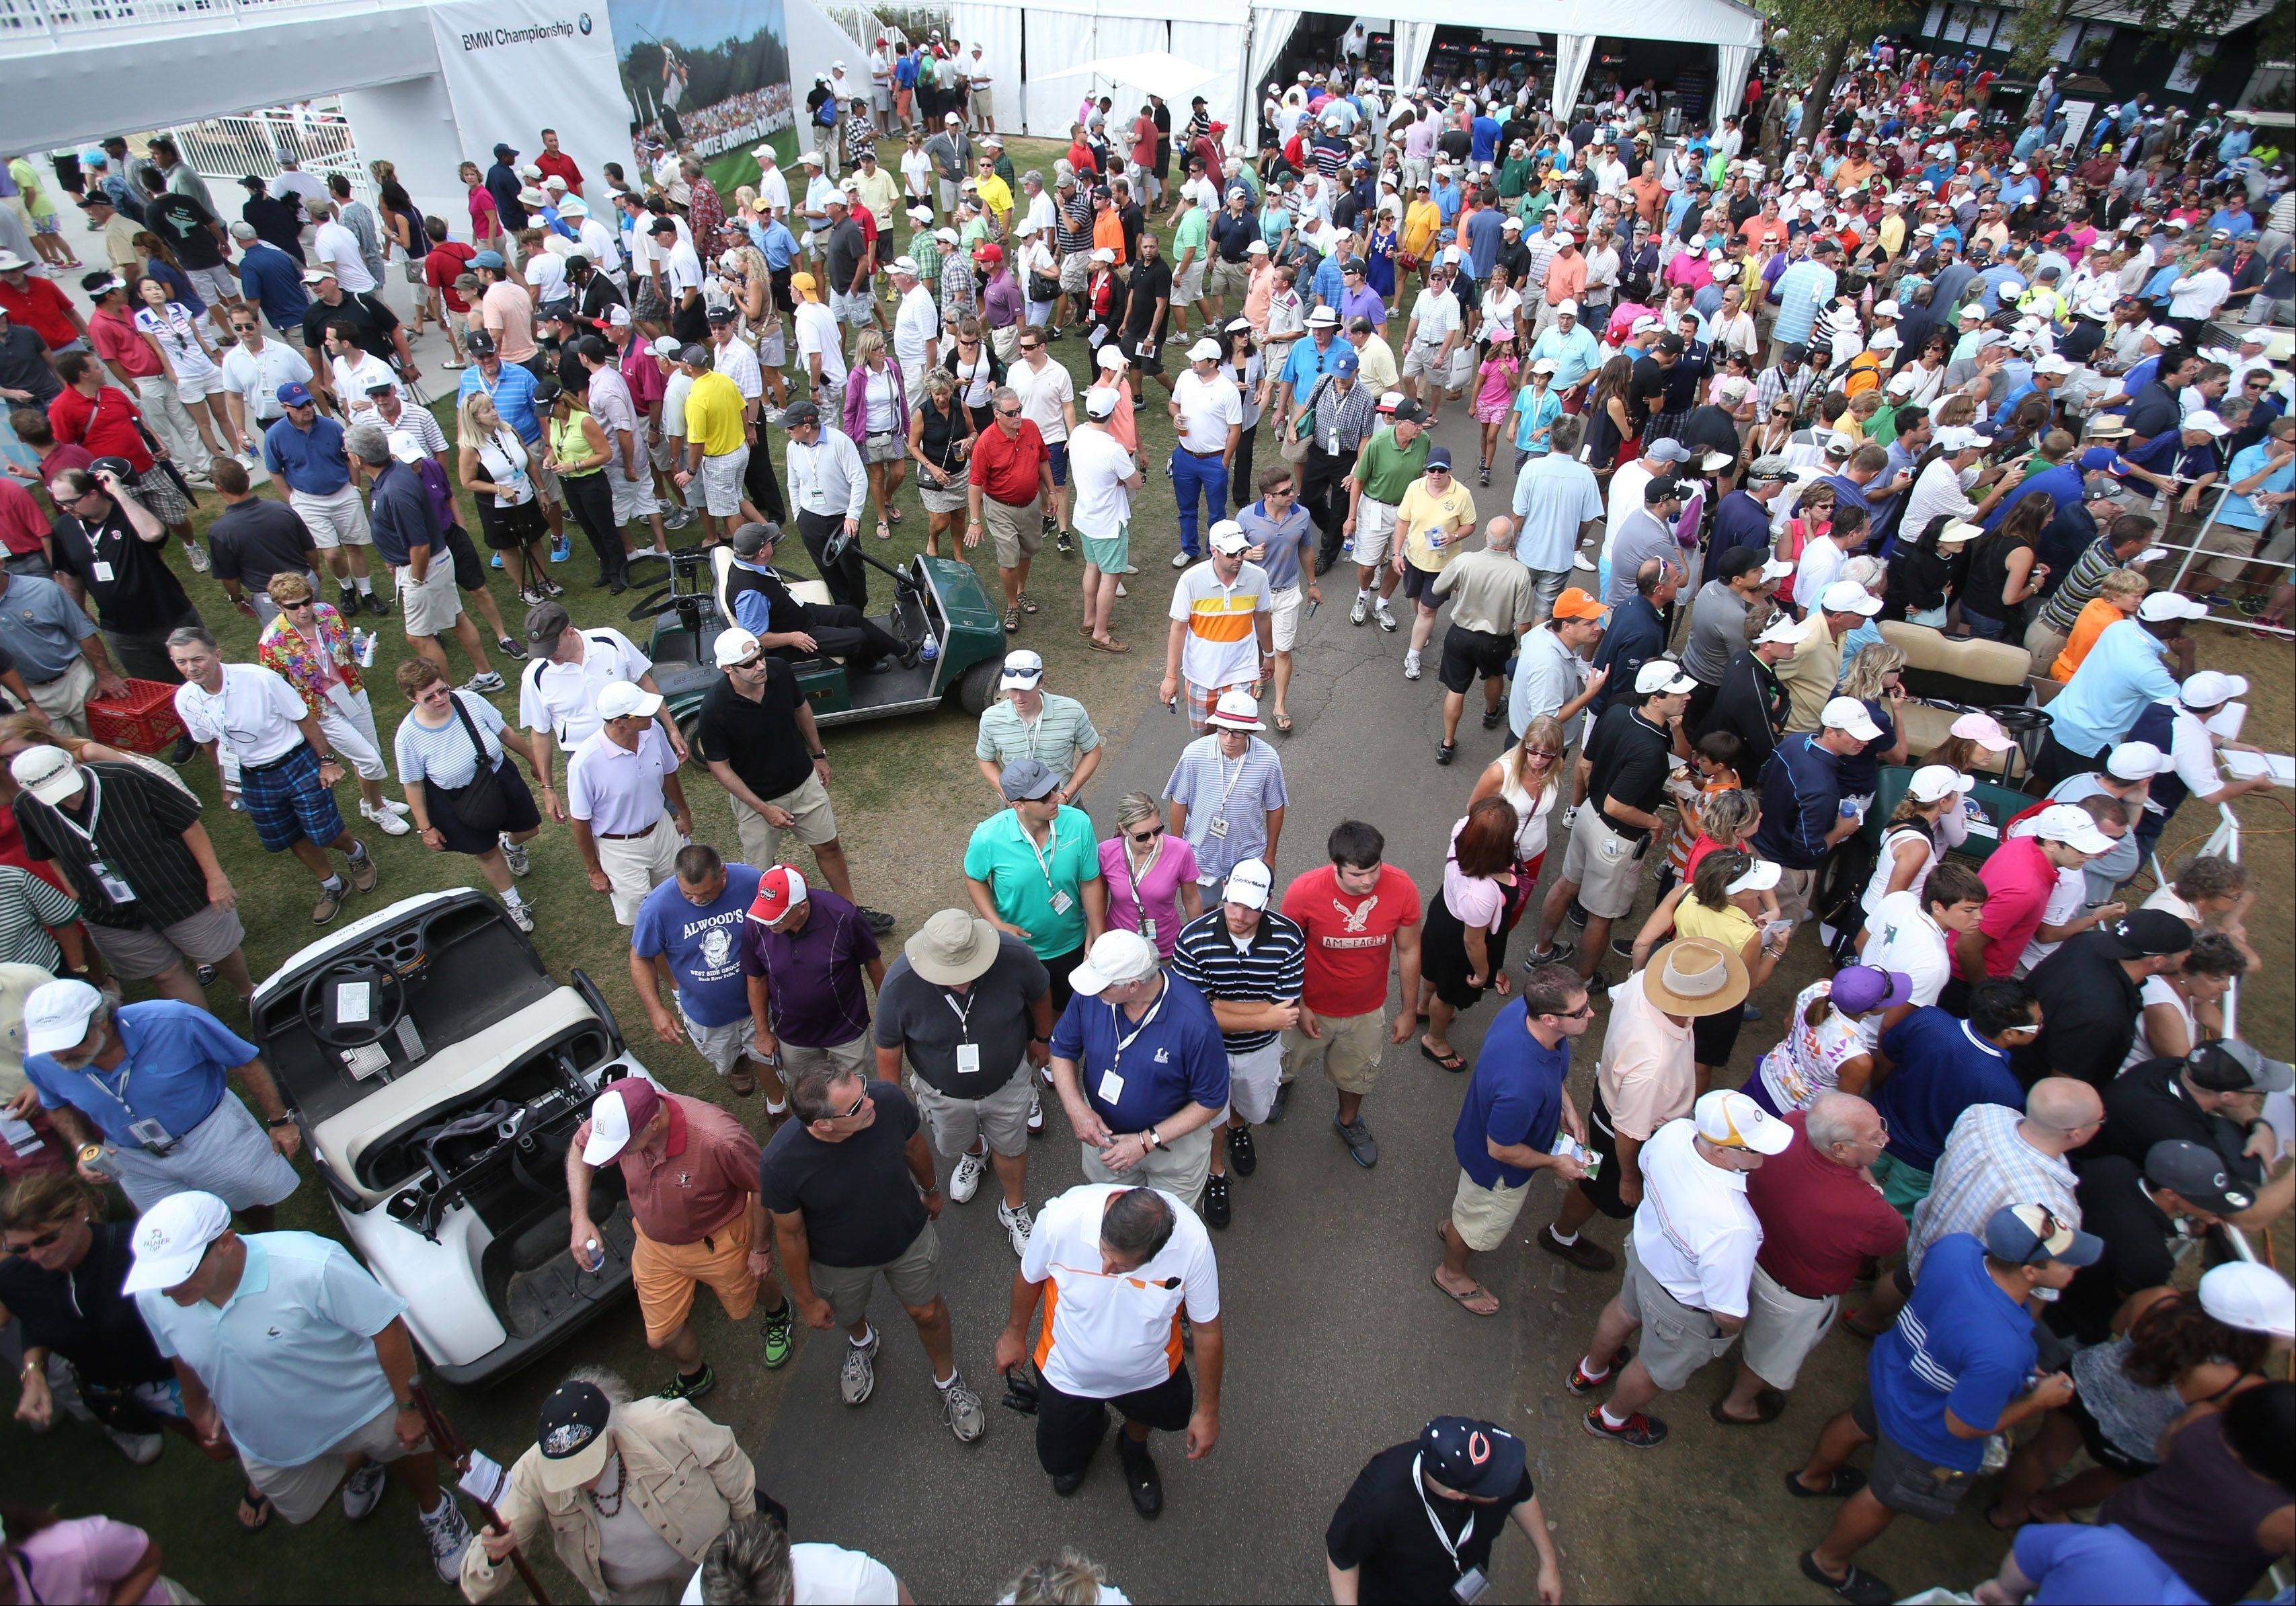 Golf fans walk through a packed walkway.